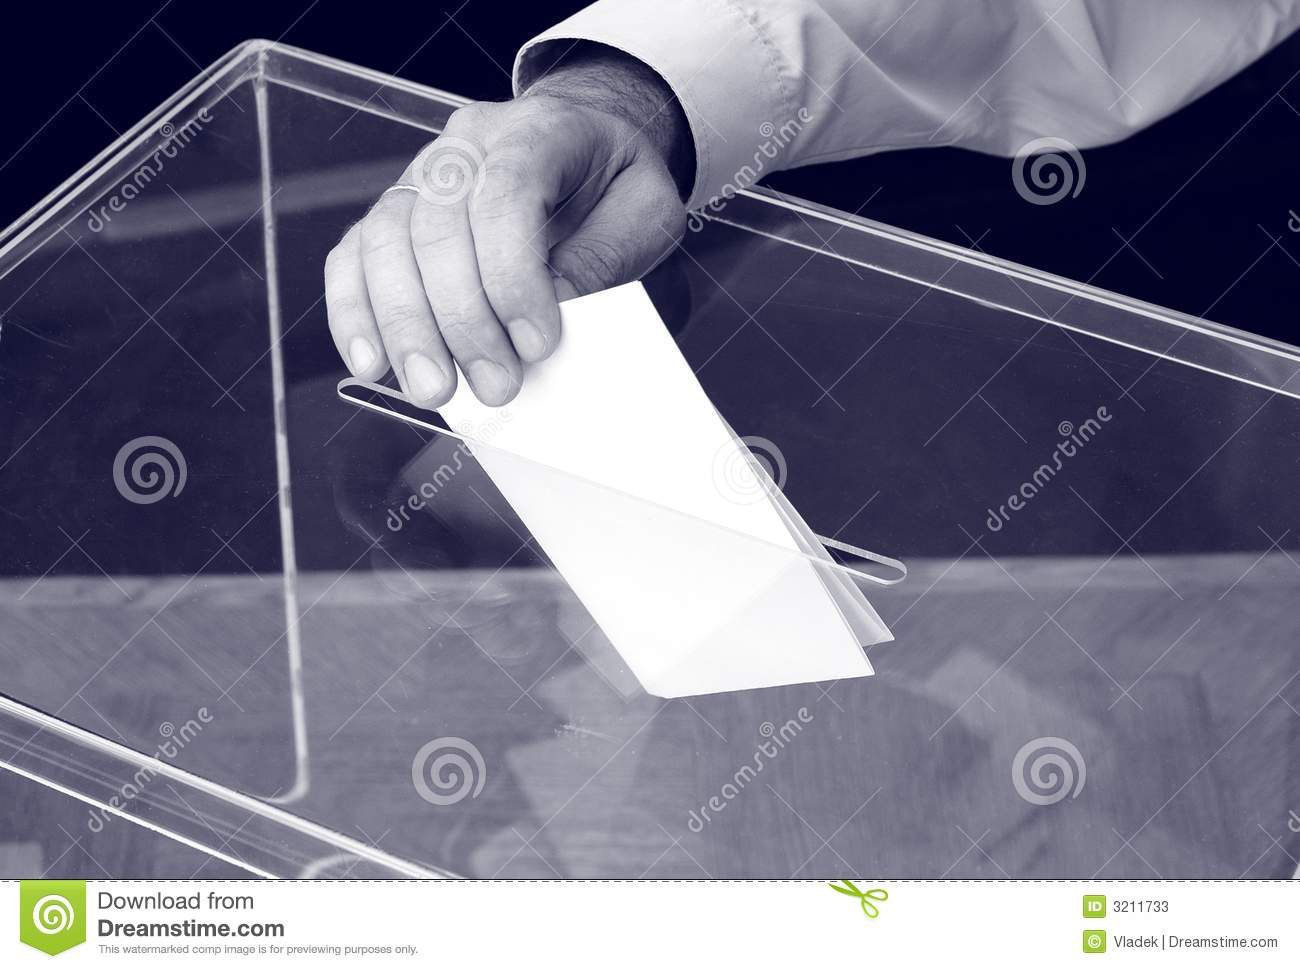 Its time for elections